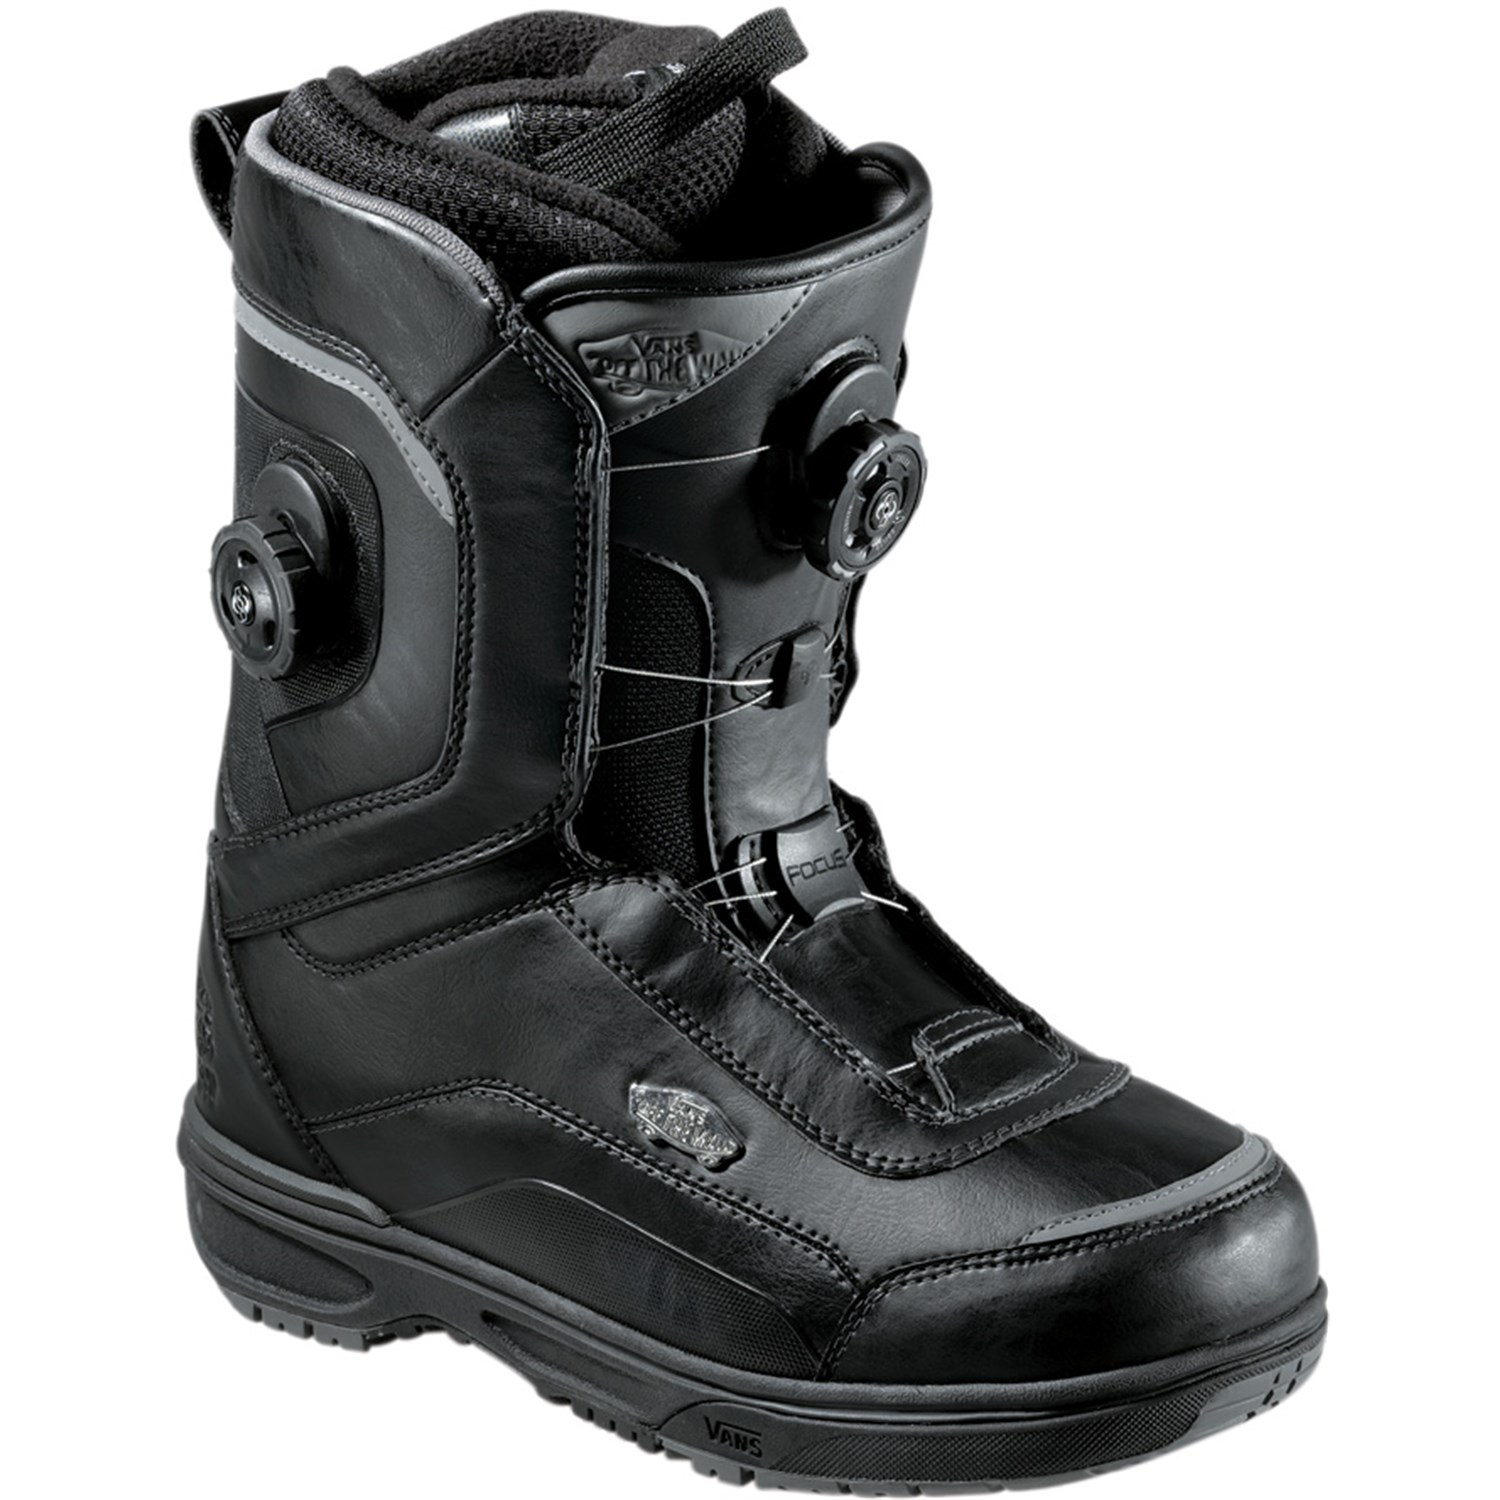 vans cirro boa snowboard boots 2012 evo outlet. Black Bedroom Furniture Sets. Home Design Ideas